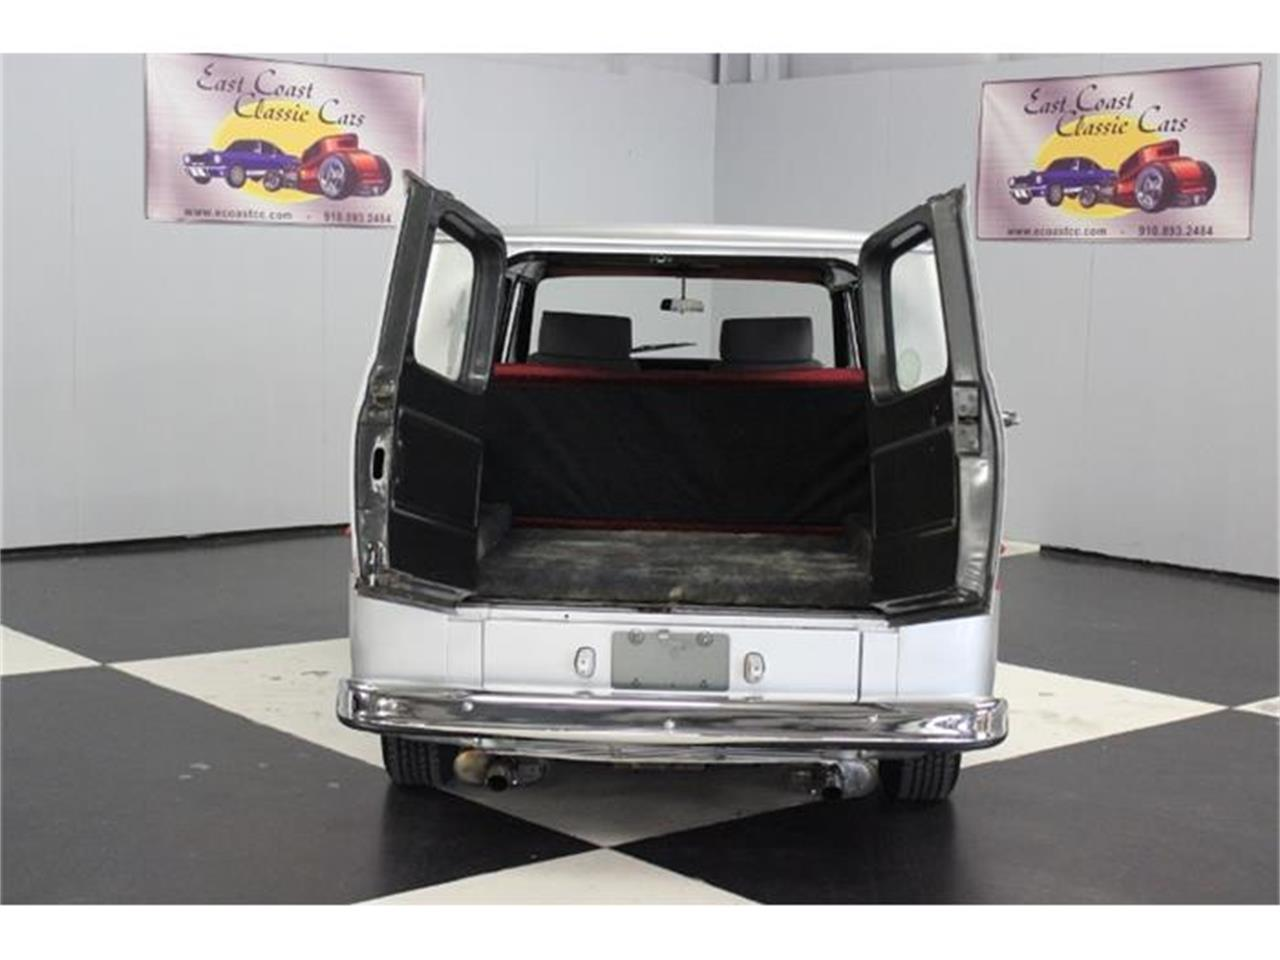 Large Picture of Classic 1961 Van located in Lillington North Carolina Offered by East Coast Classic Cars - F258